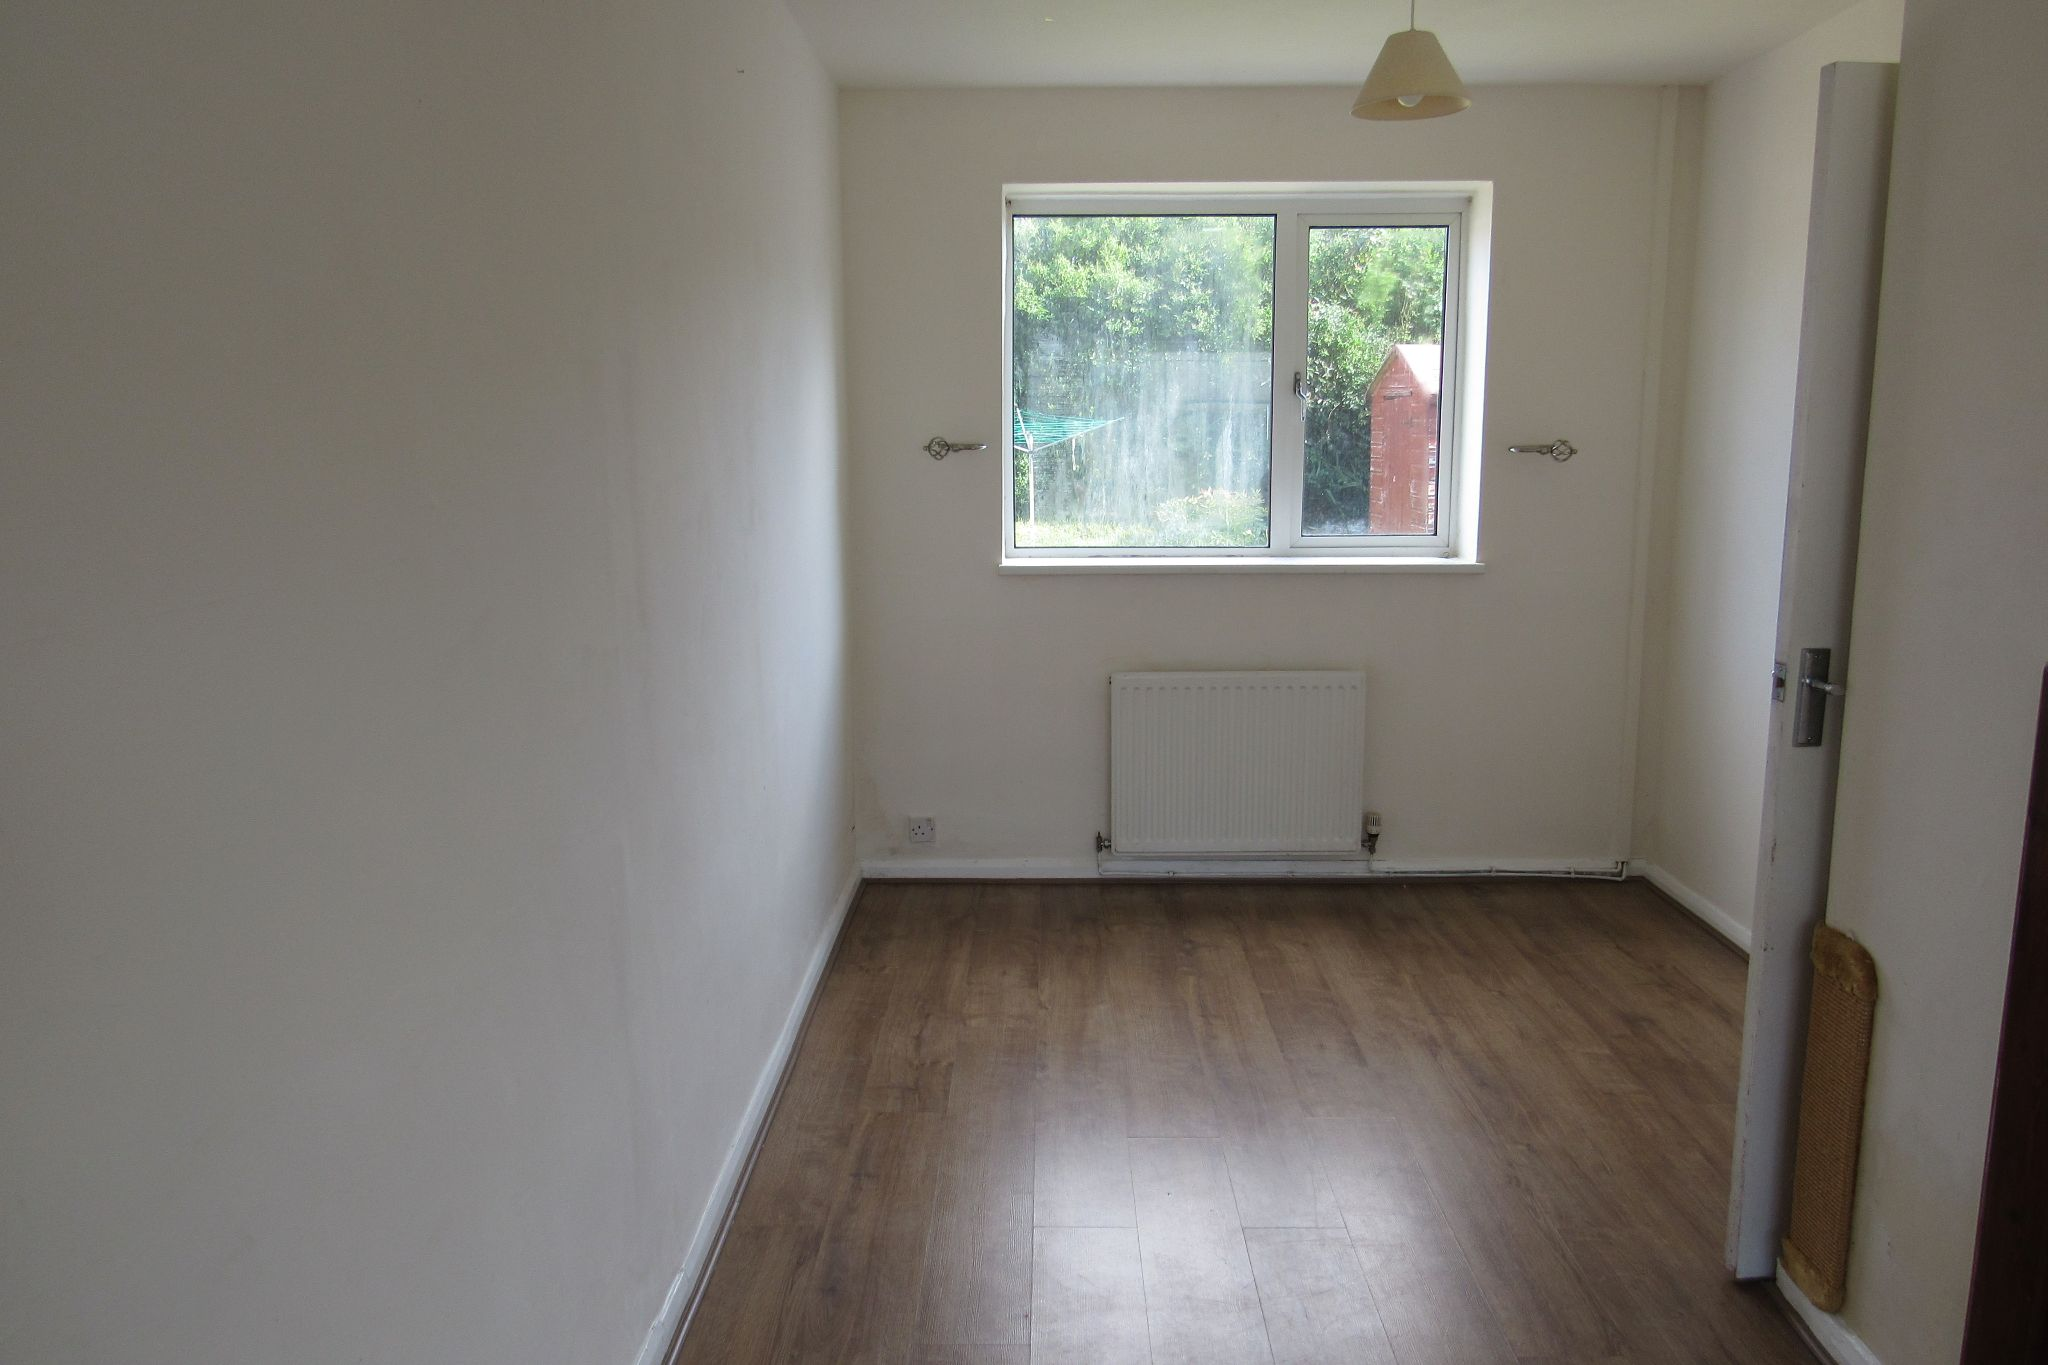 3 bedroom mid terraced house Sale Agreed in Manchester - Photograph 3.